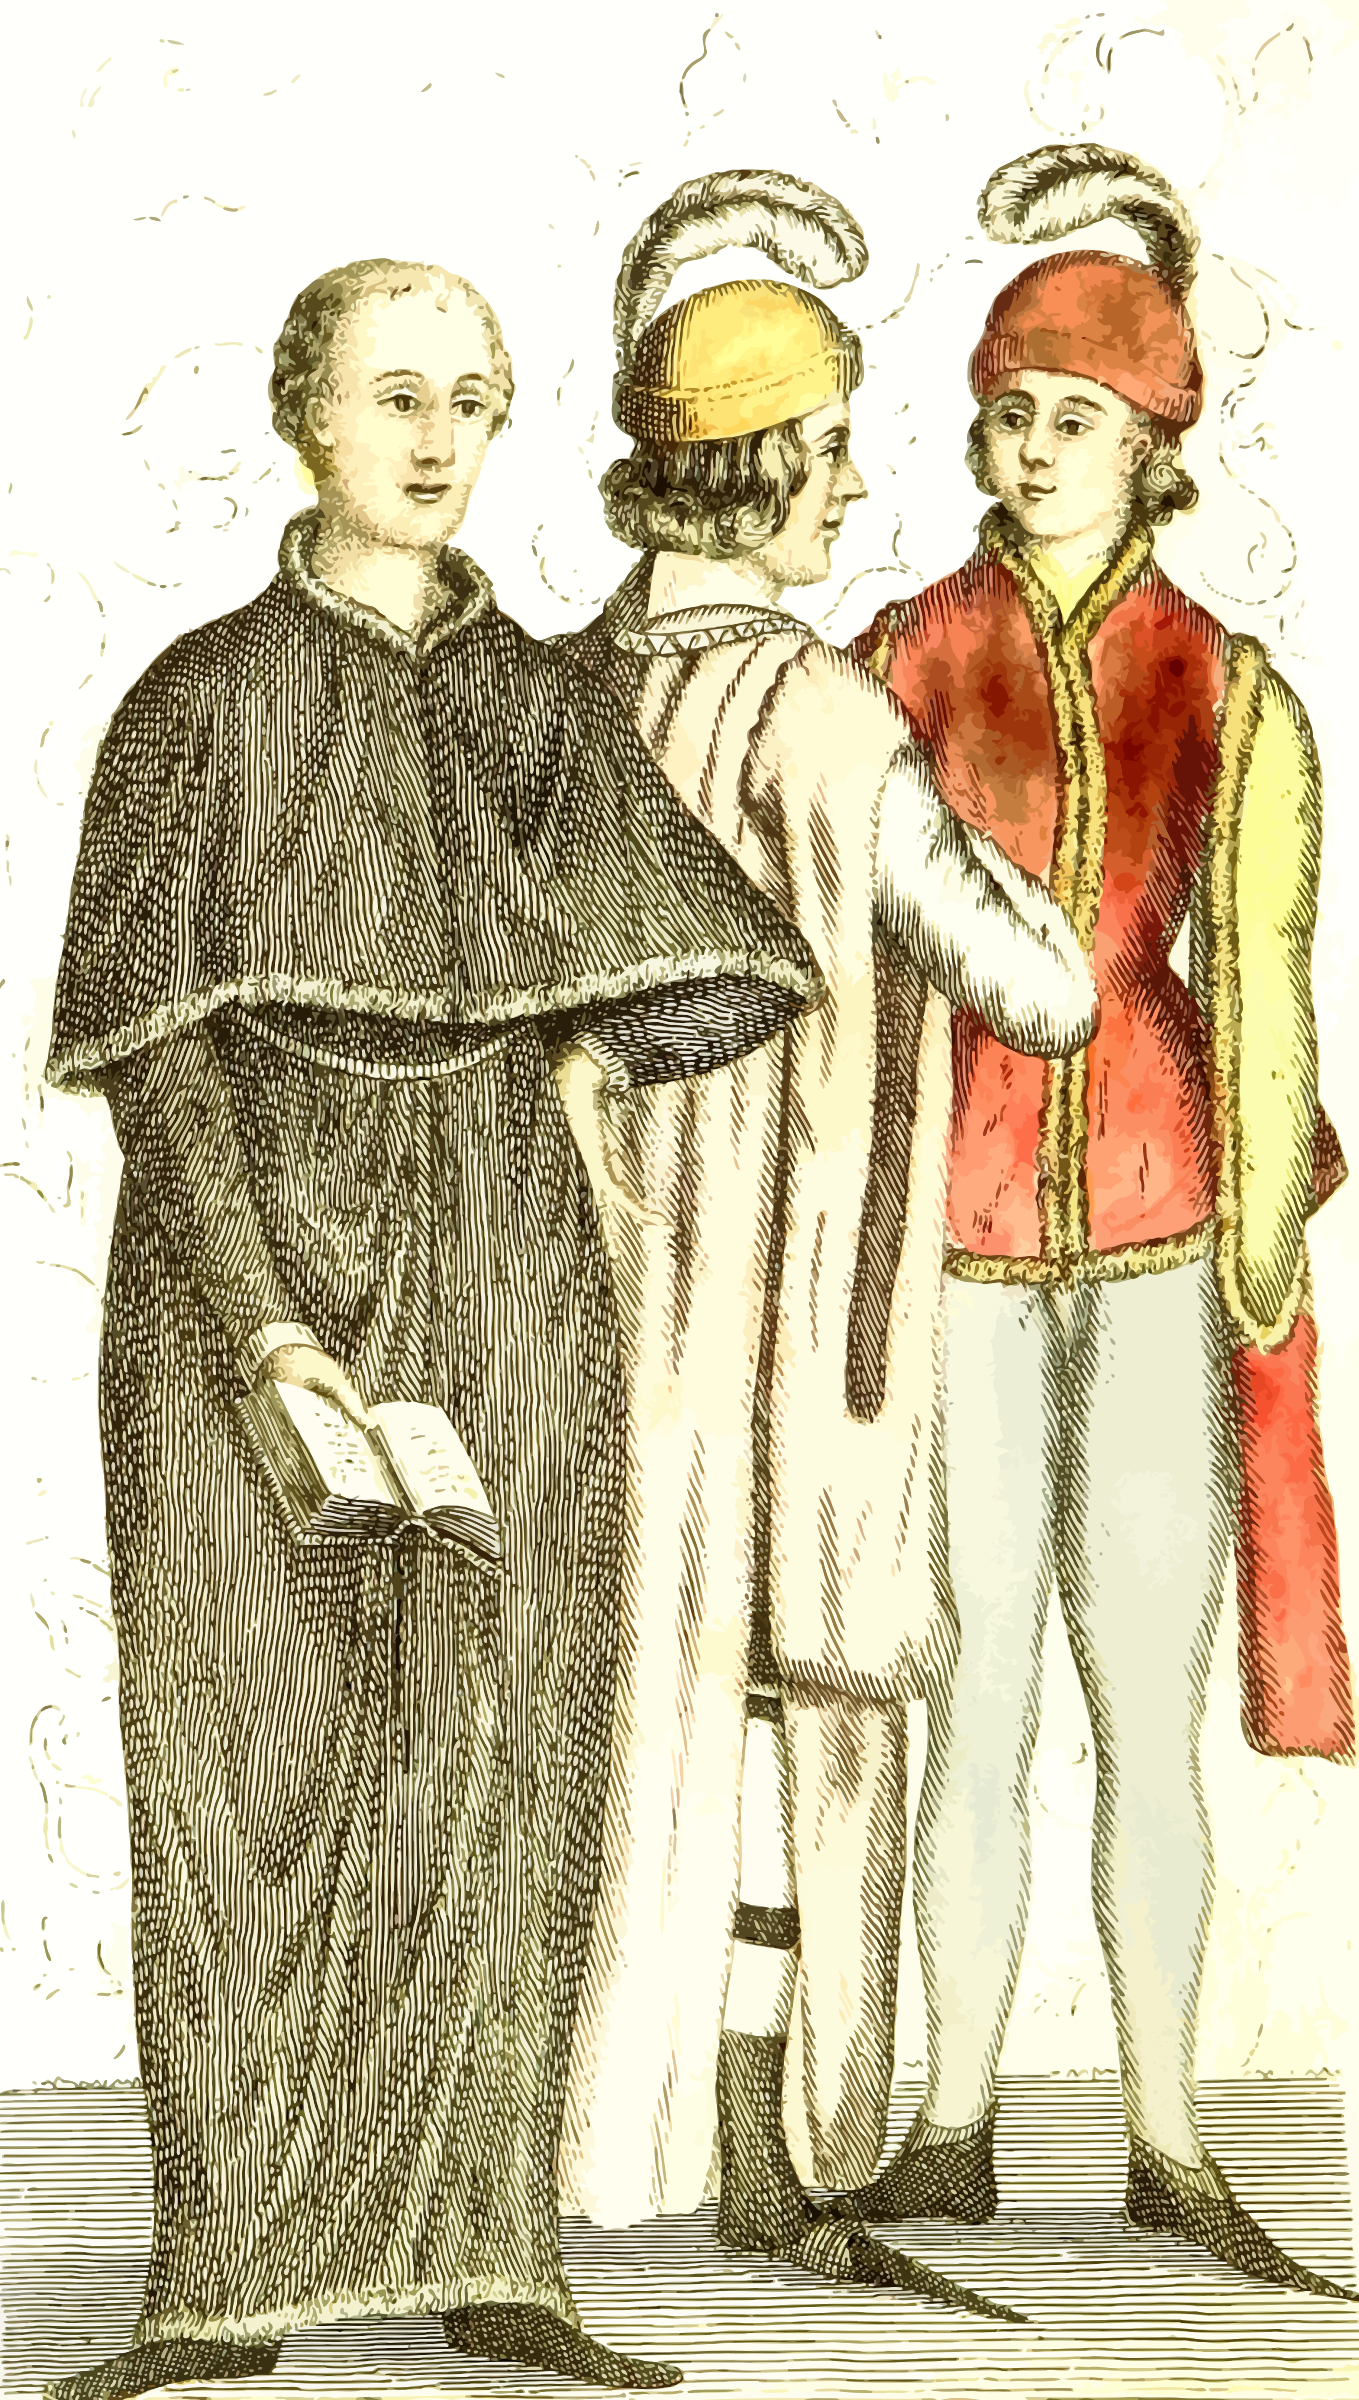 15th century dress 3 by Firkin